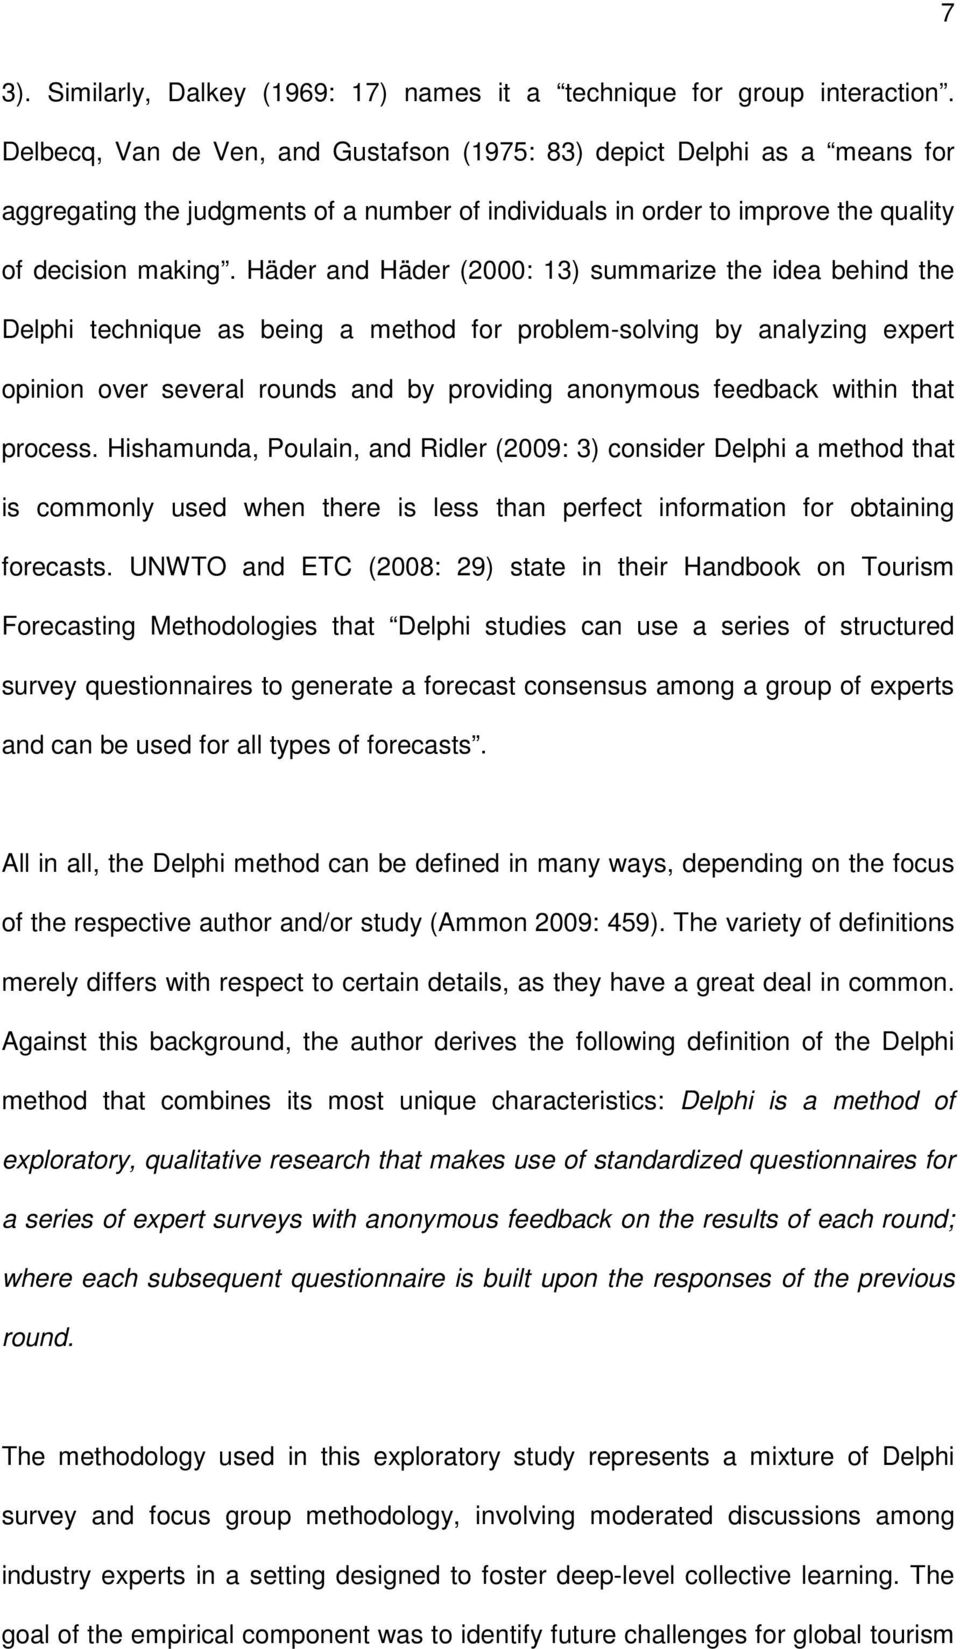 Häder and Häder (2000: 13) summarize the idea behind the Delphi technique as being a method for problem-solving by analyzing expert opinion over several rounds and by providing anonymous feedback